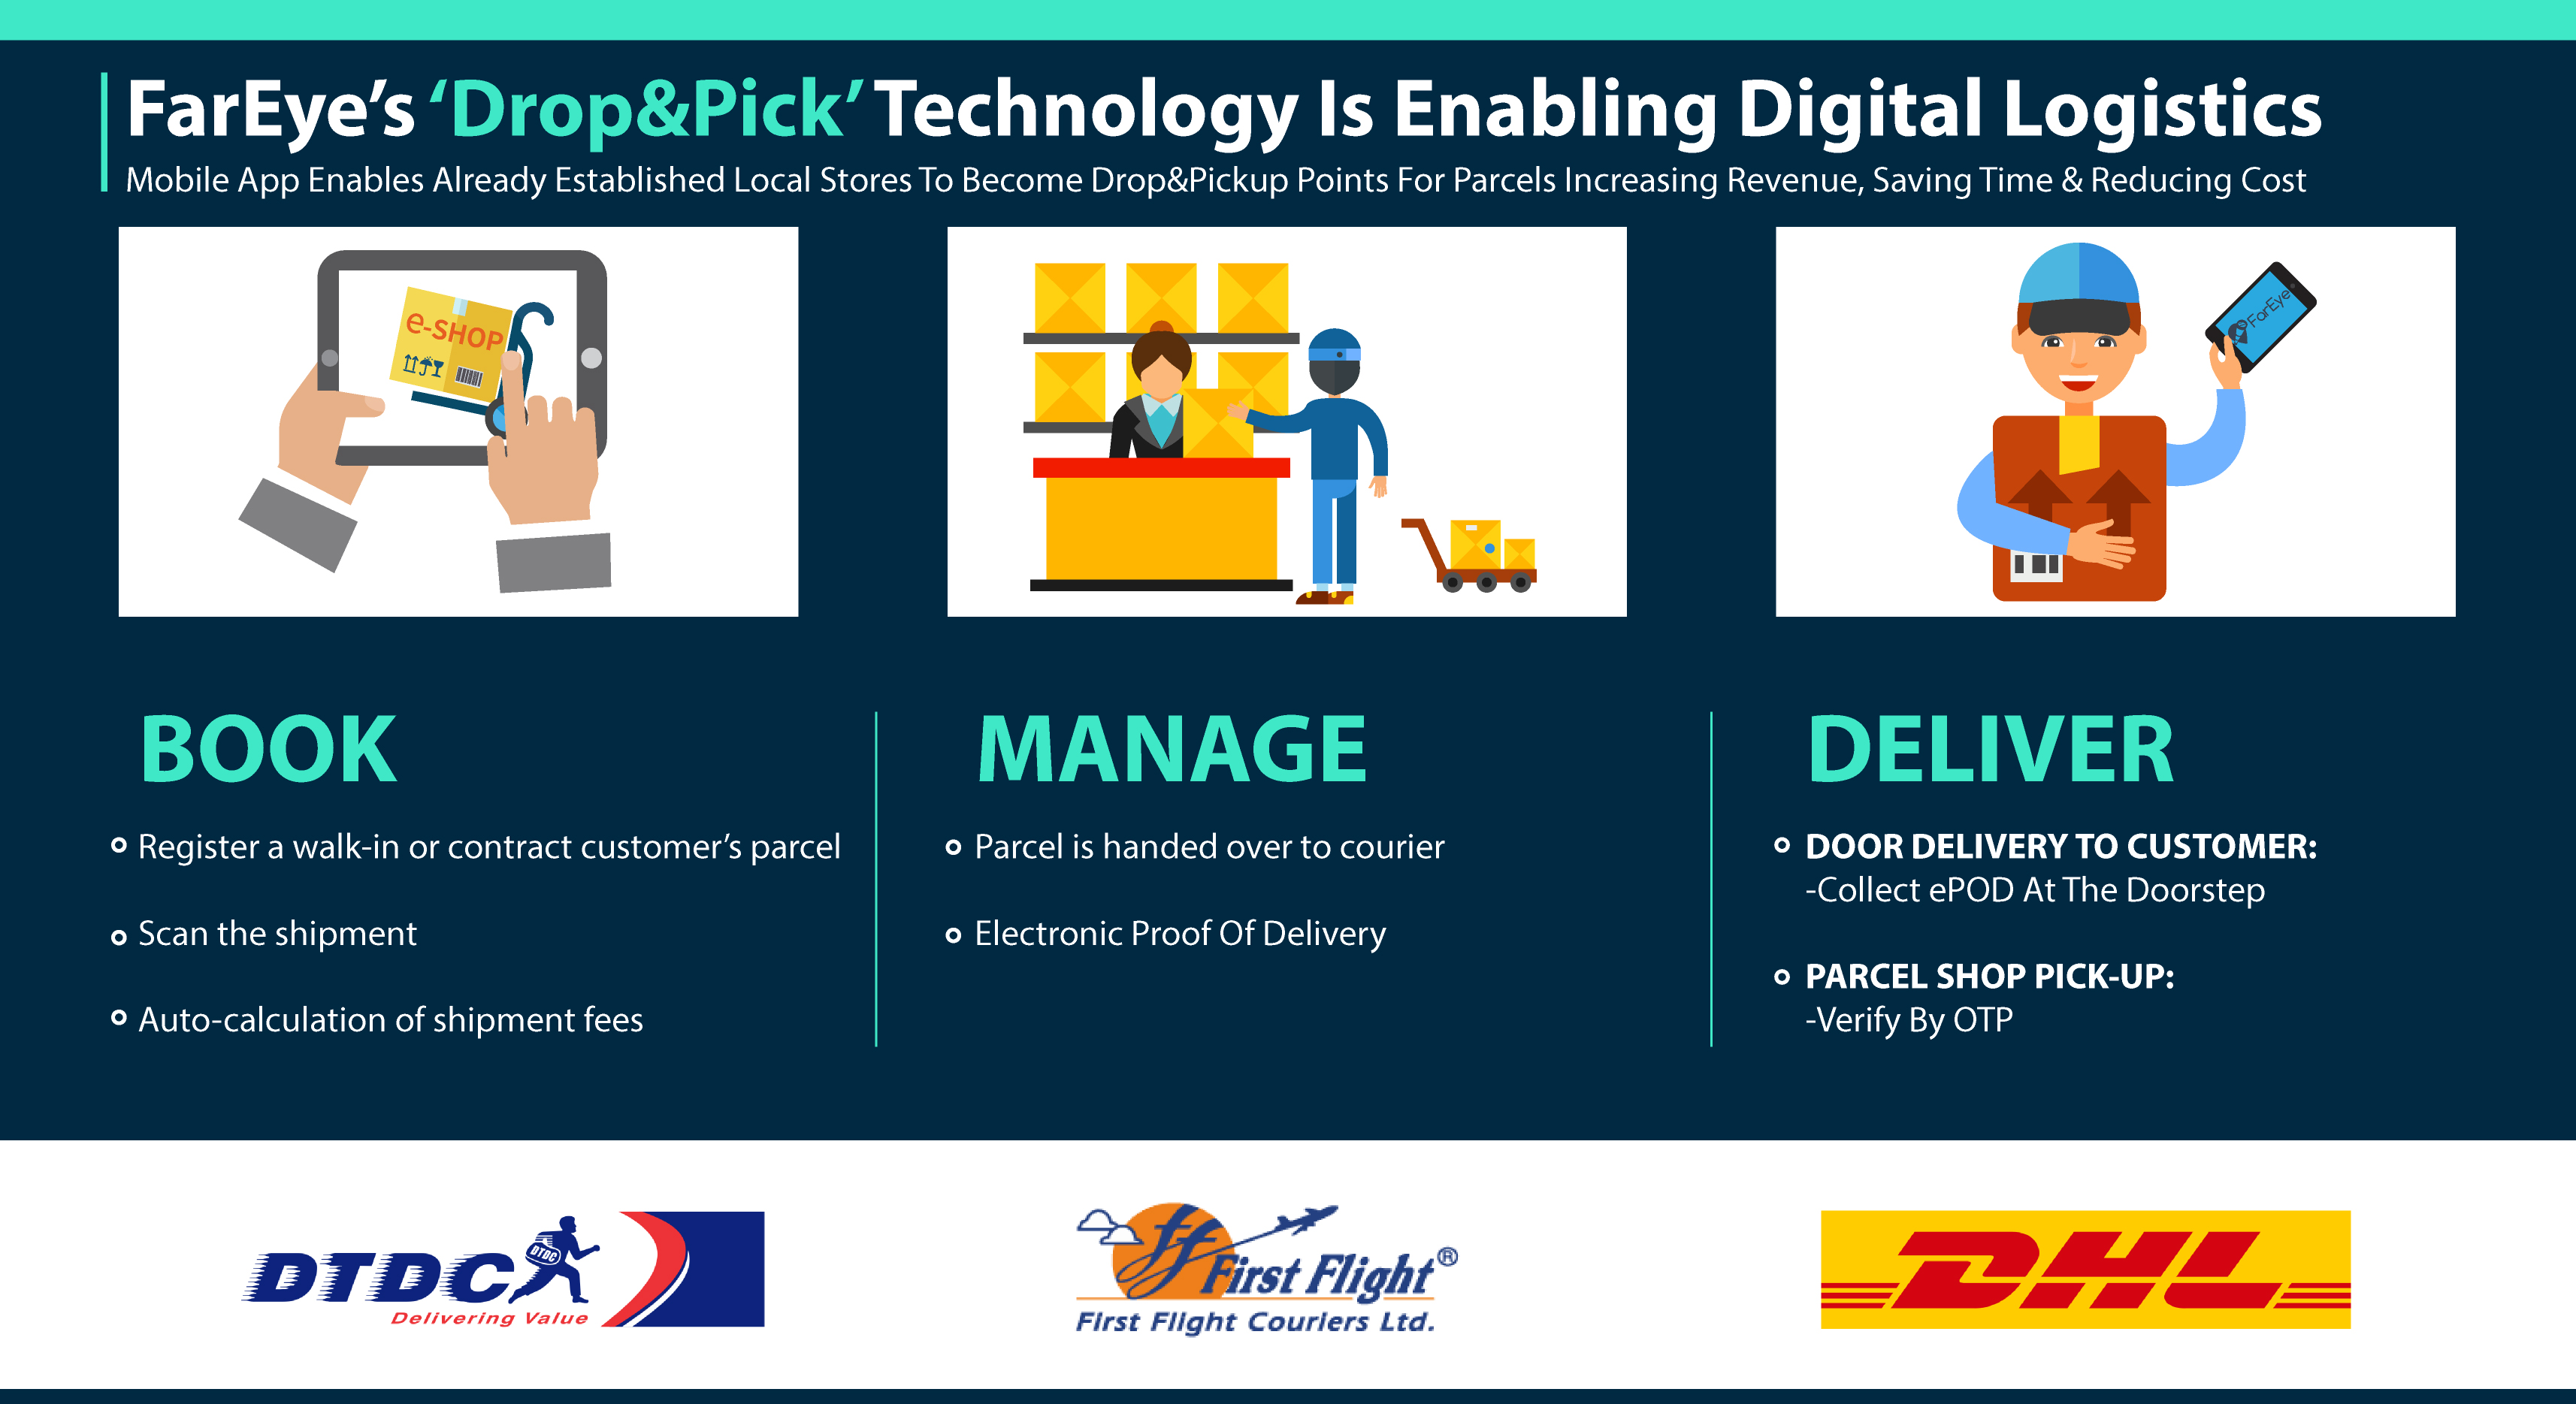 FarEye To Benefit 177.8 Million Online Shoppers in USA With Its Parcel Shop Technology - 'Drop&Pick'